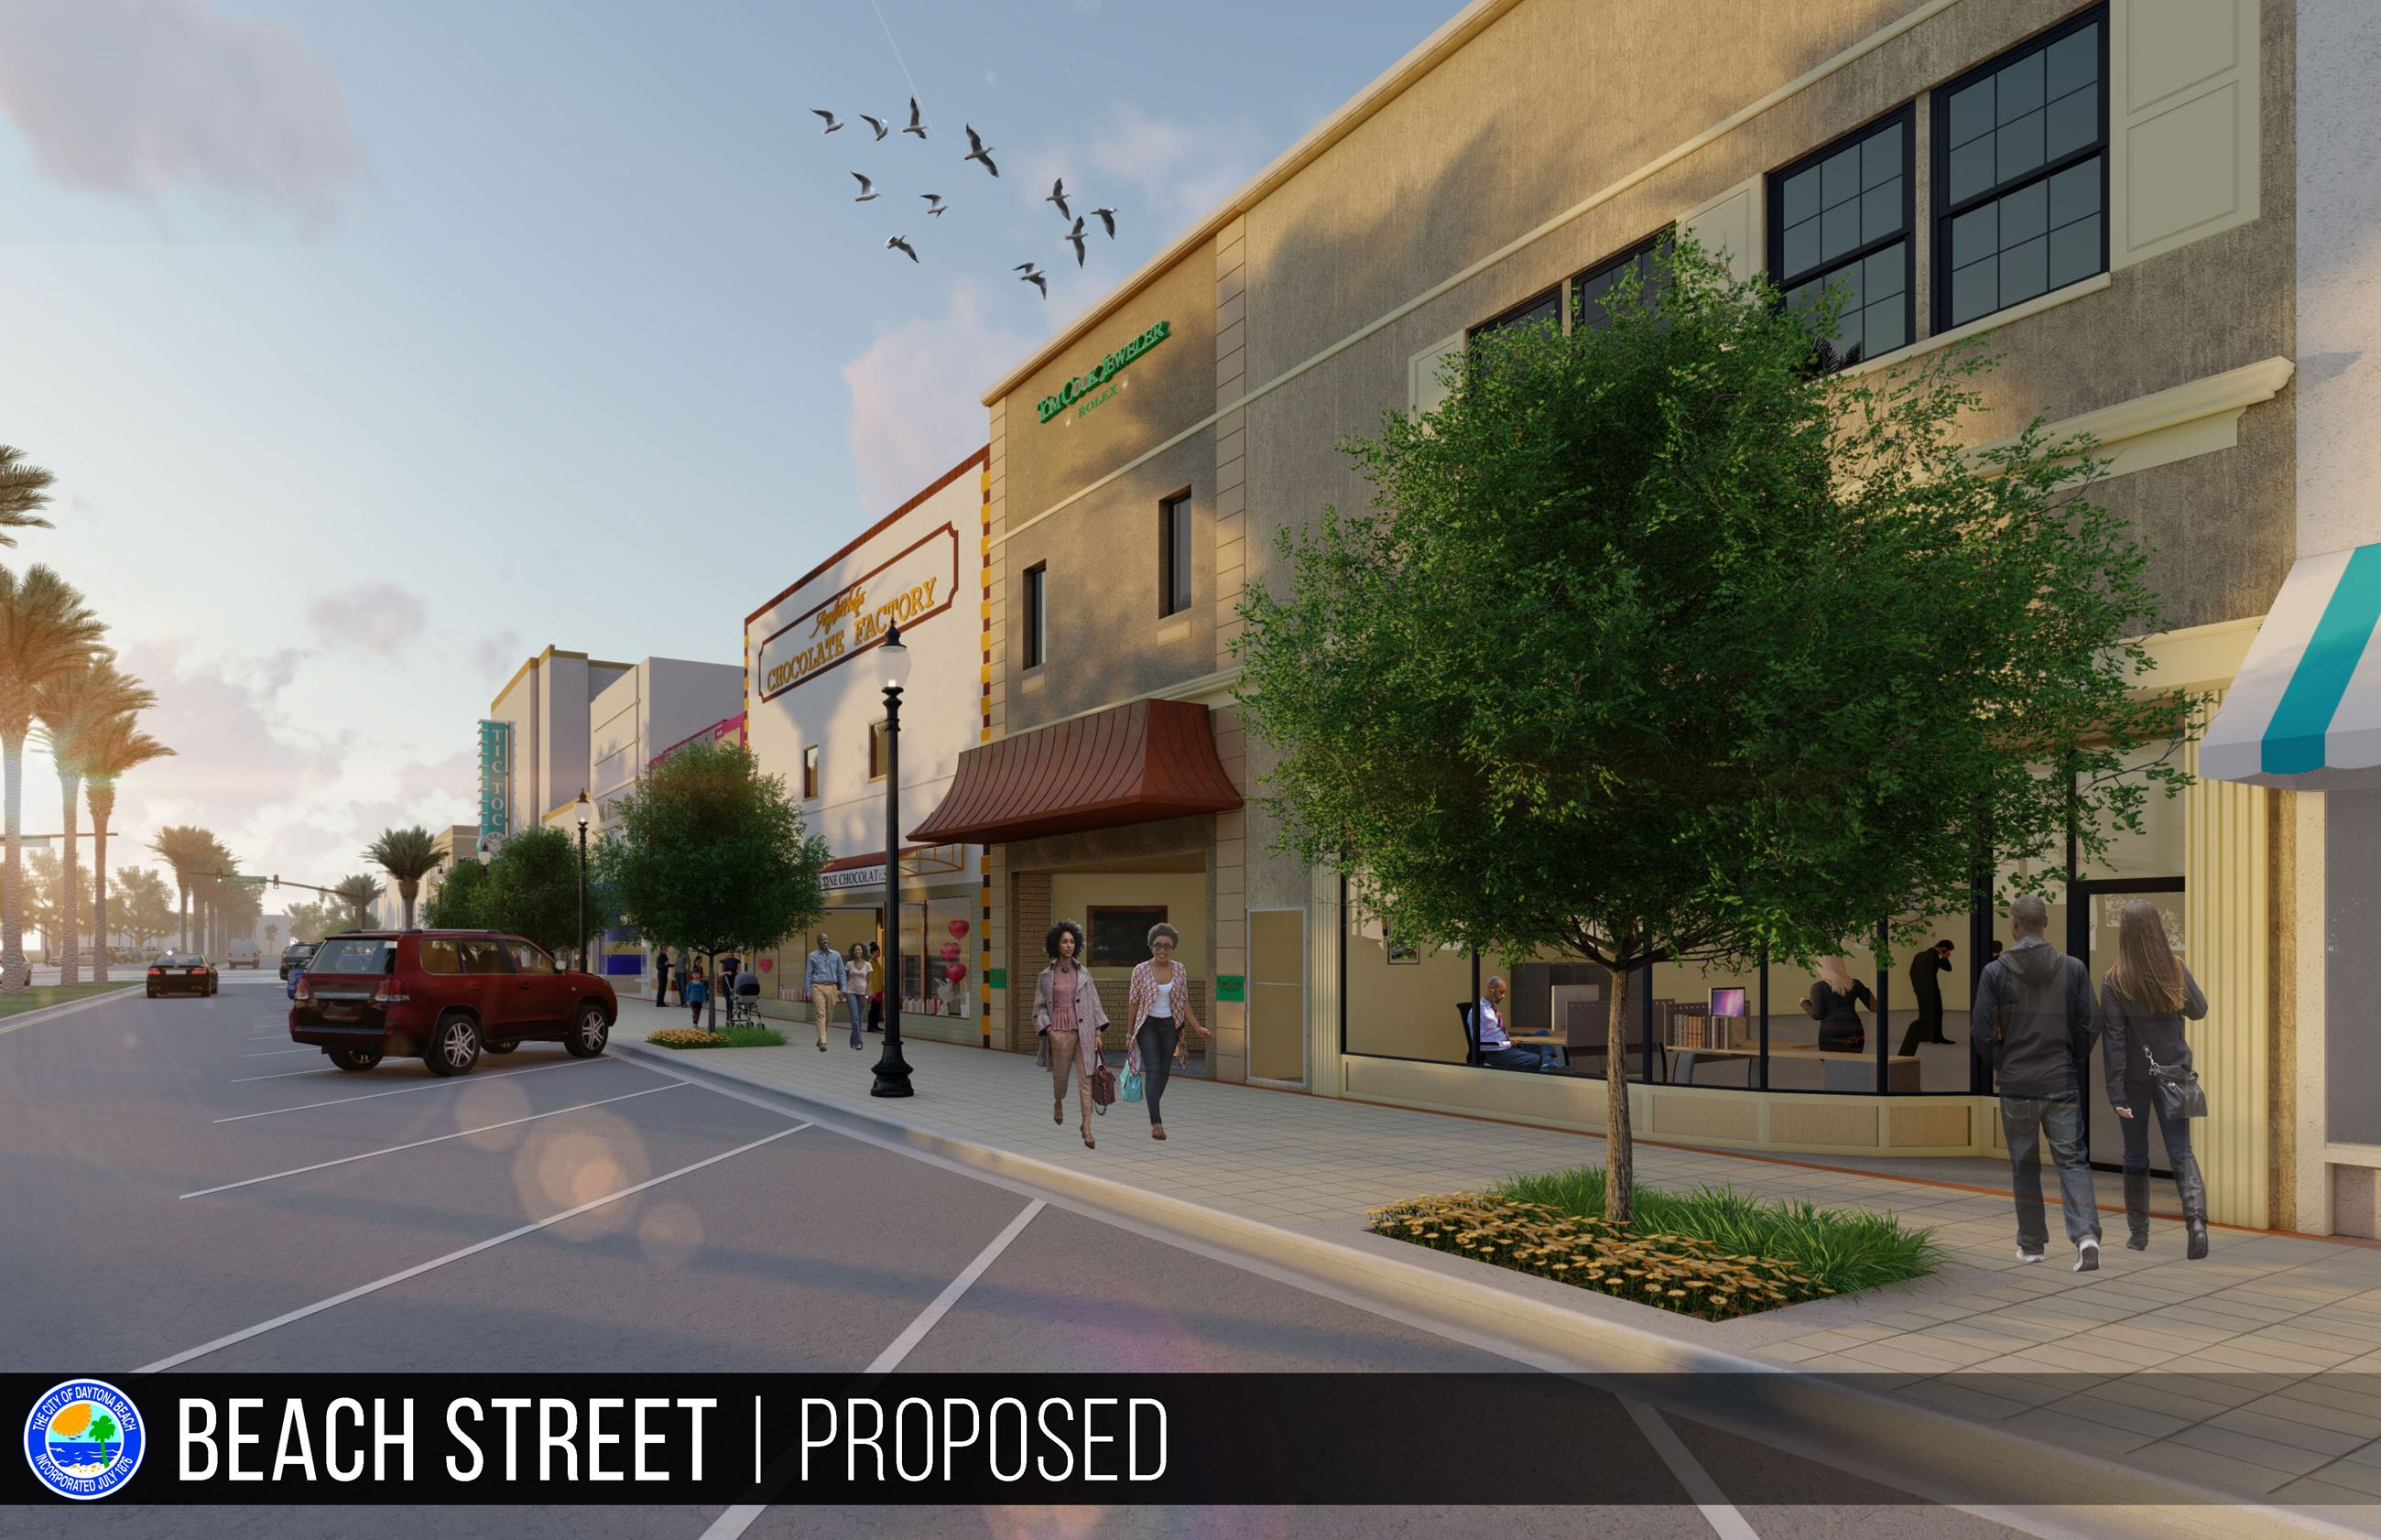 Beach Street Proposed